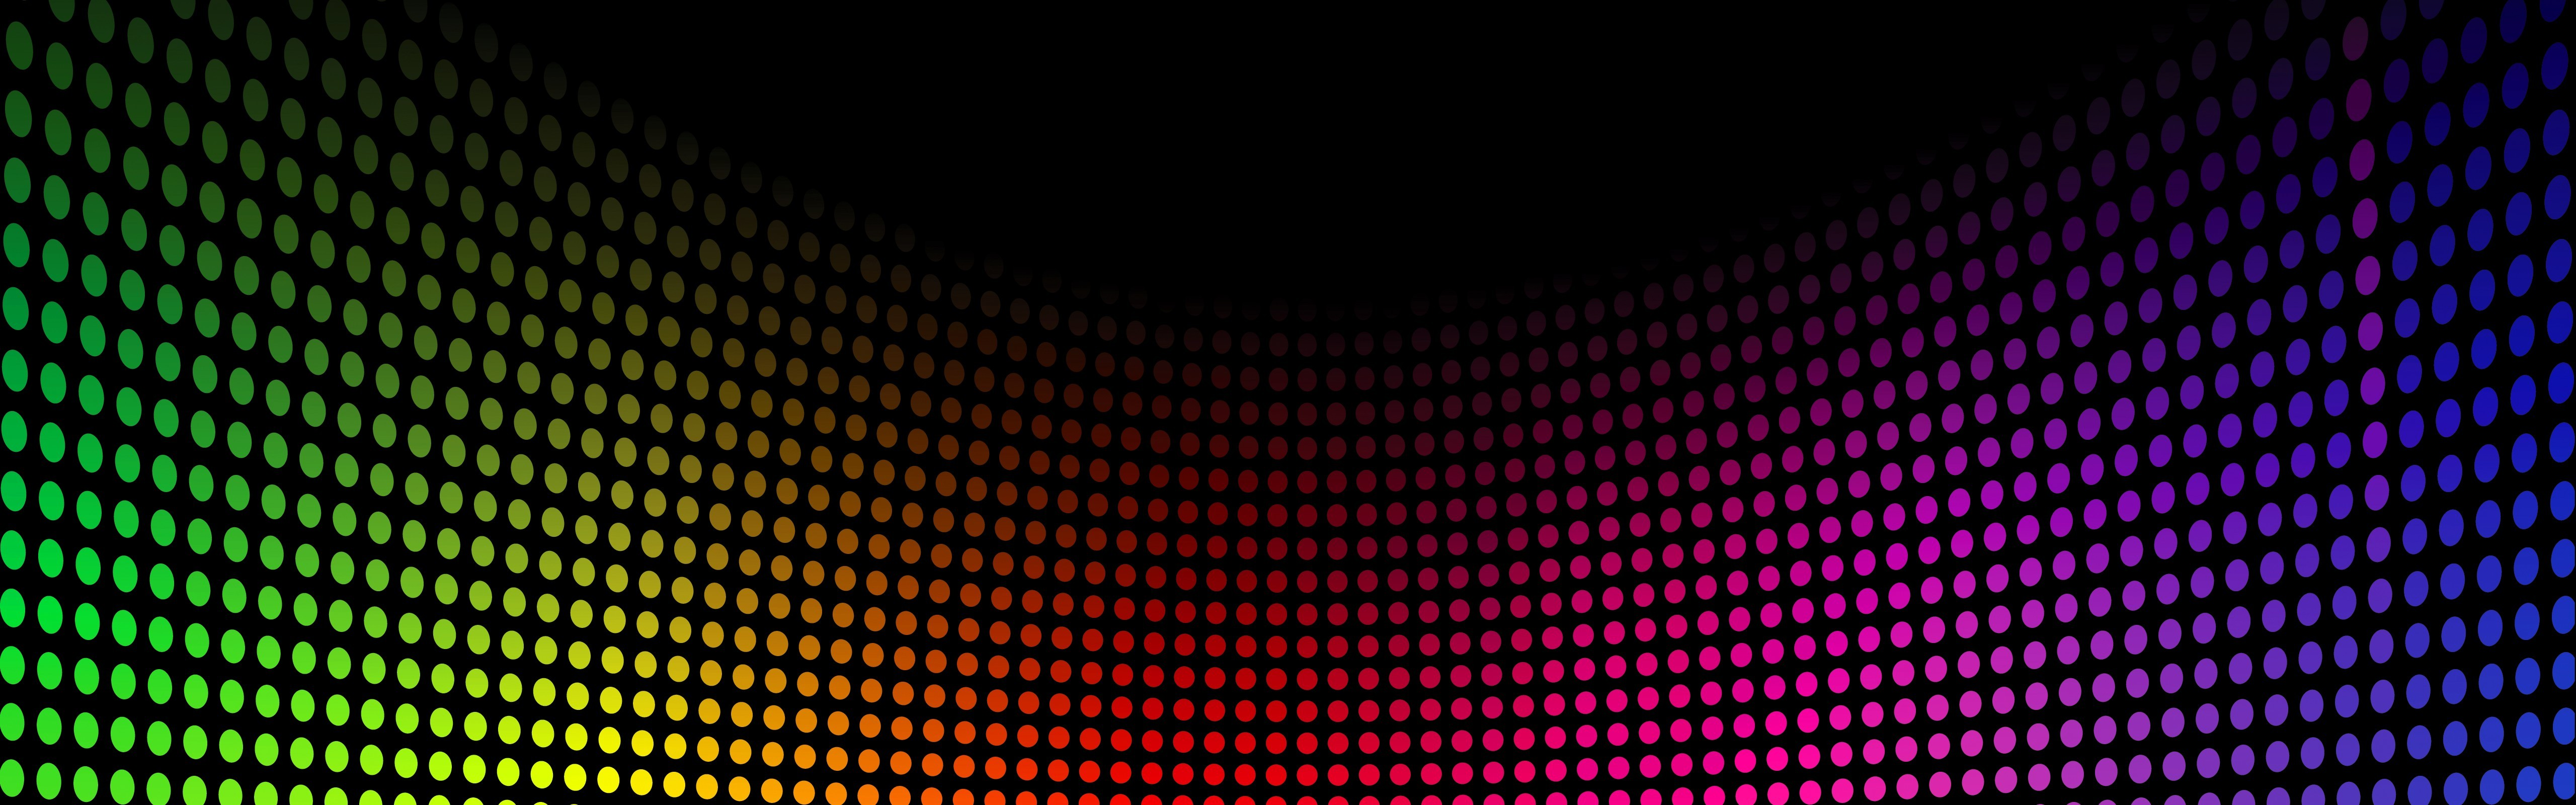 Royalty Free Stock Photography Music Background Grunge Poster Image36017087 further Neon Color Wallpapers as well Night lights artistic bokeh furthermore Hd Wallpapers 1366x768 For Laptop further Stock Photography Green Disco Ball Light Burst Image20902232. on disco lights wallpaper